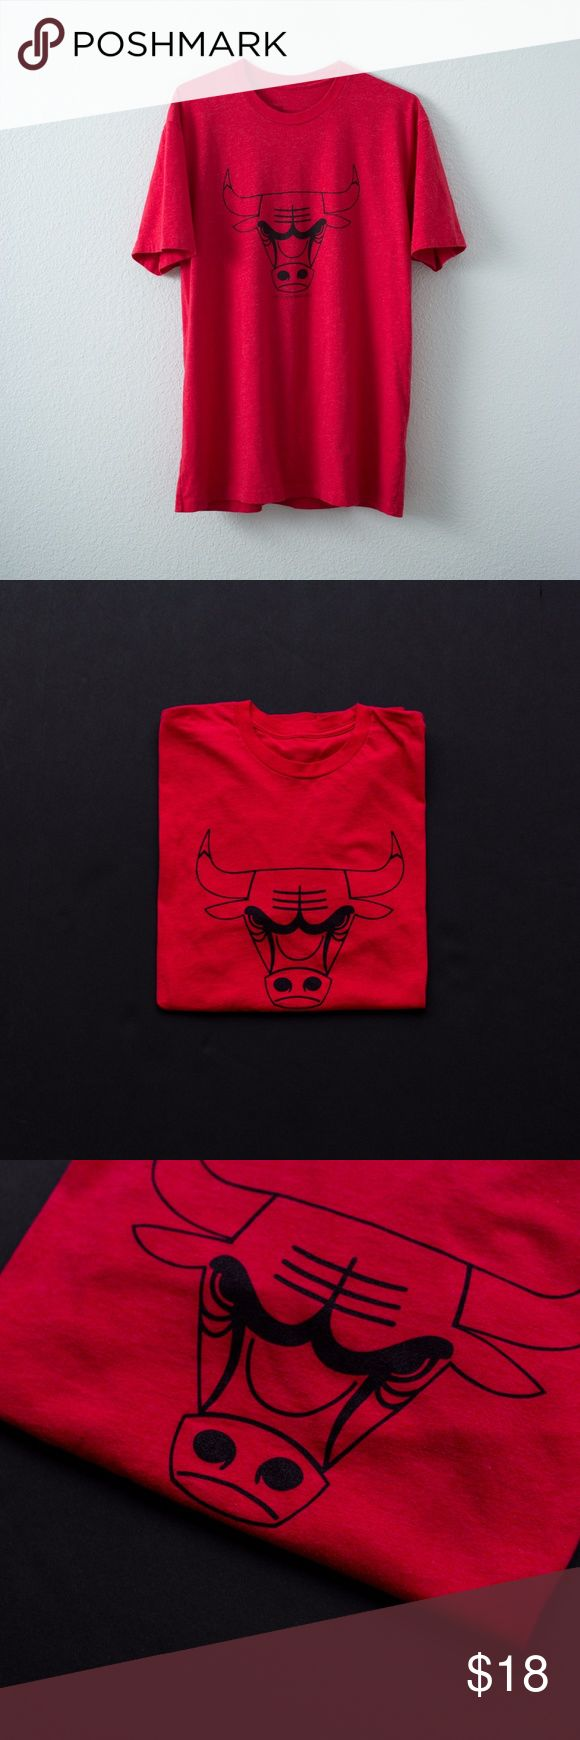 LTD NBA Chicago Bulls Triblend Tee LTD NBA Chicago Bulls Triblend Tee  Condition: 8/10 Shirts Tees - Short Sleeve